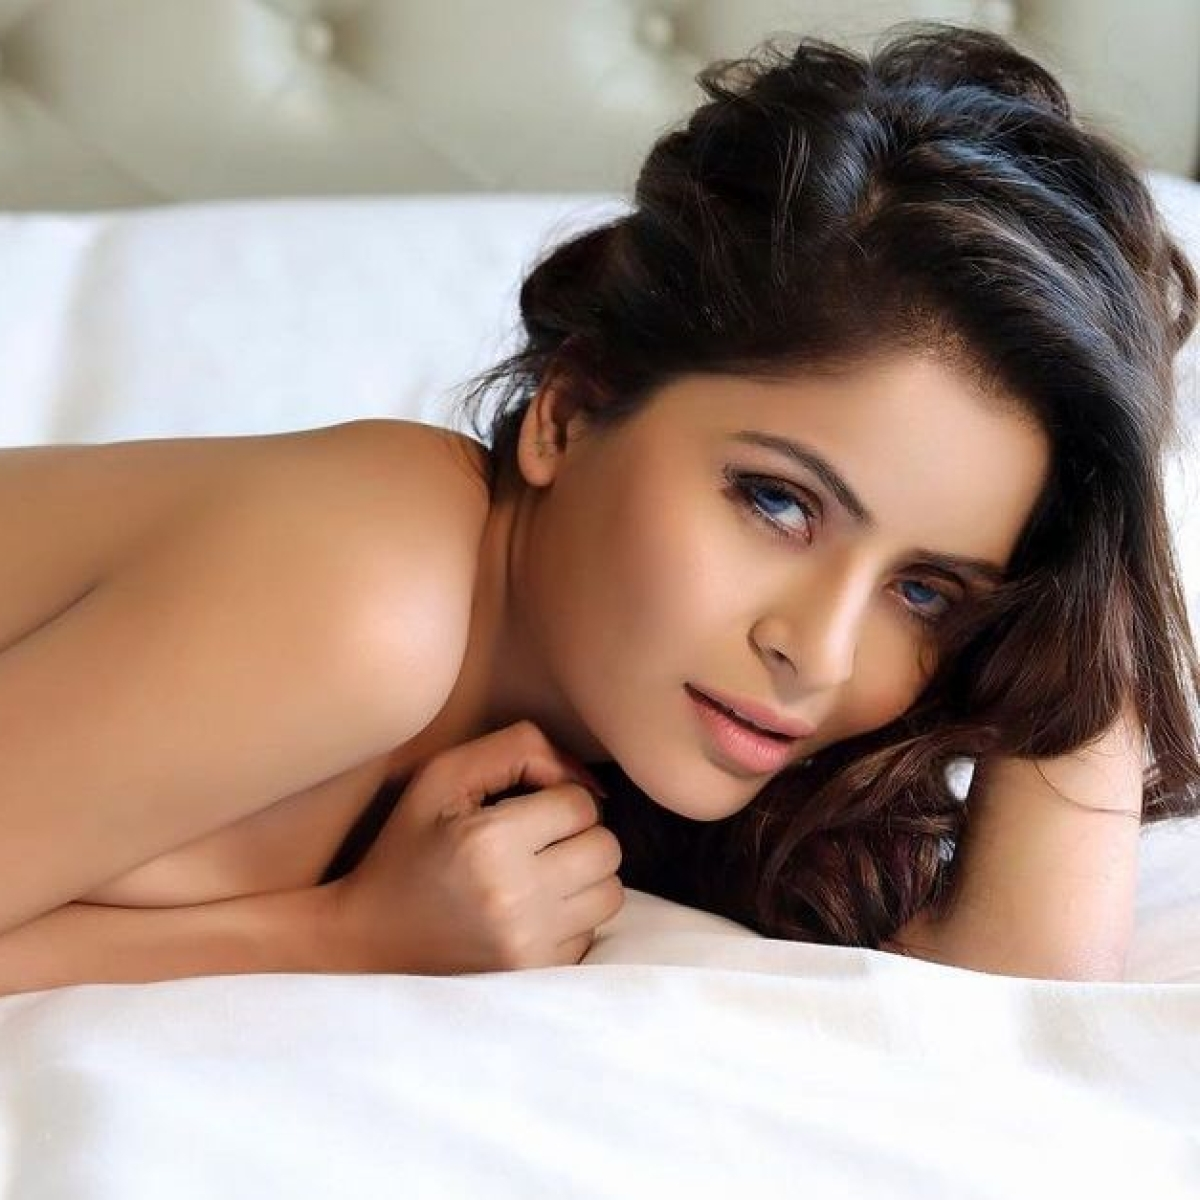 'Gehana Vasisth is being falsely implicated', claims TV actor's publicist over porn video allegations